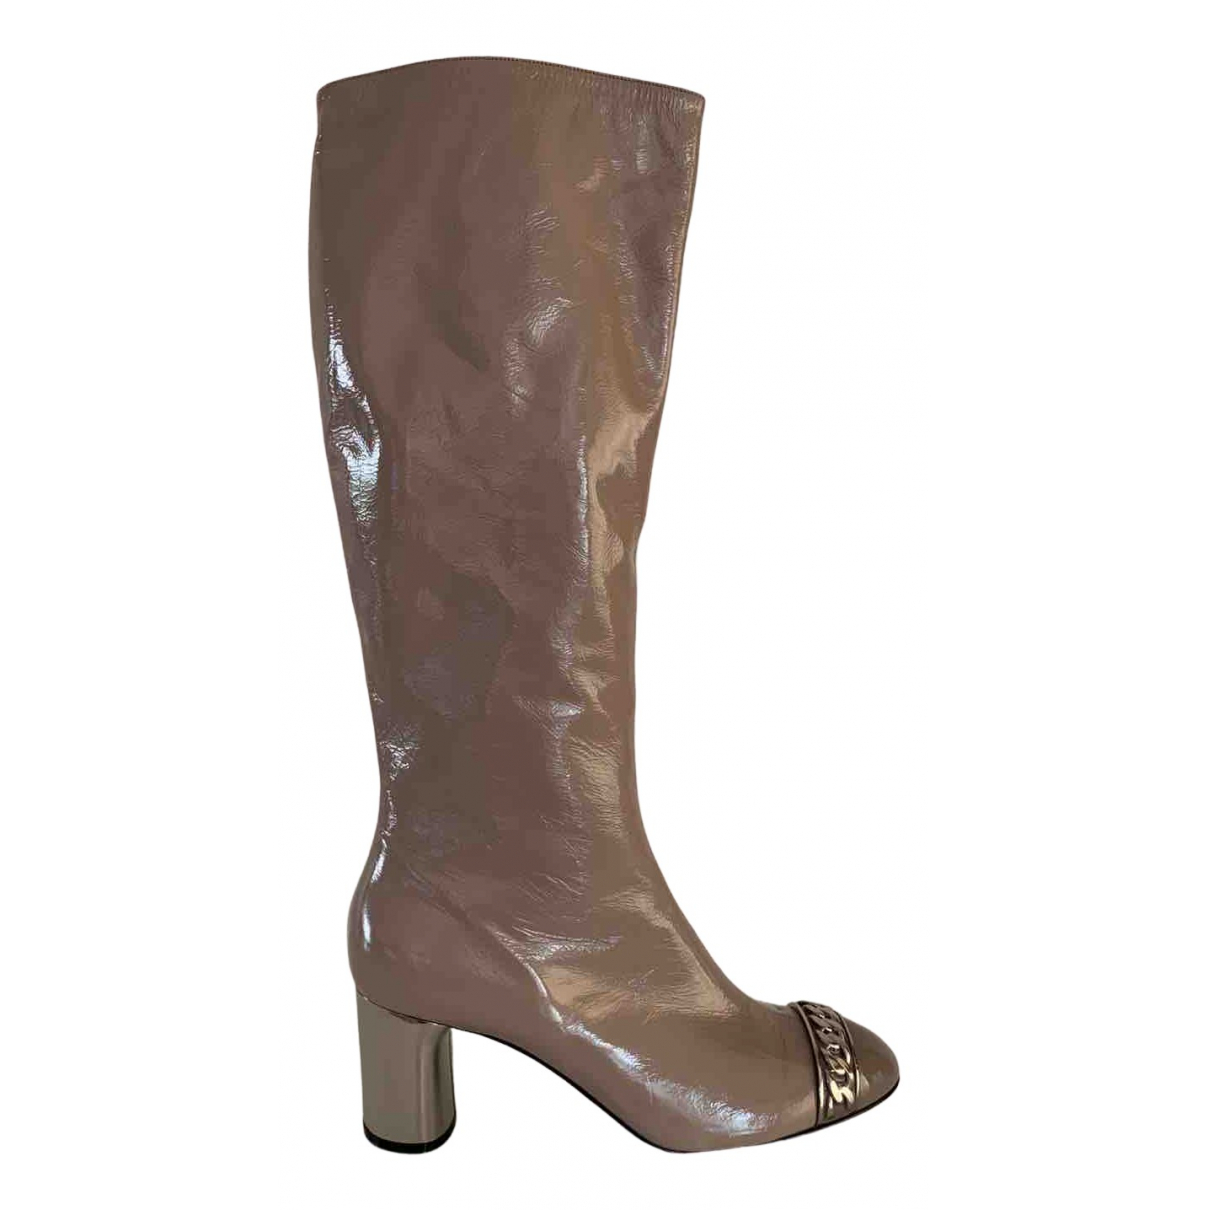 Casadei N Beige Patent leather Boots for Women 39.5 IT